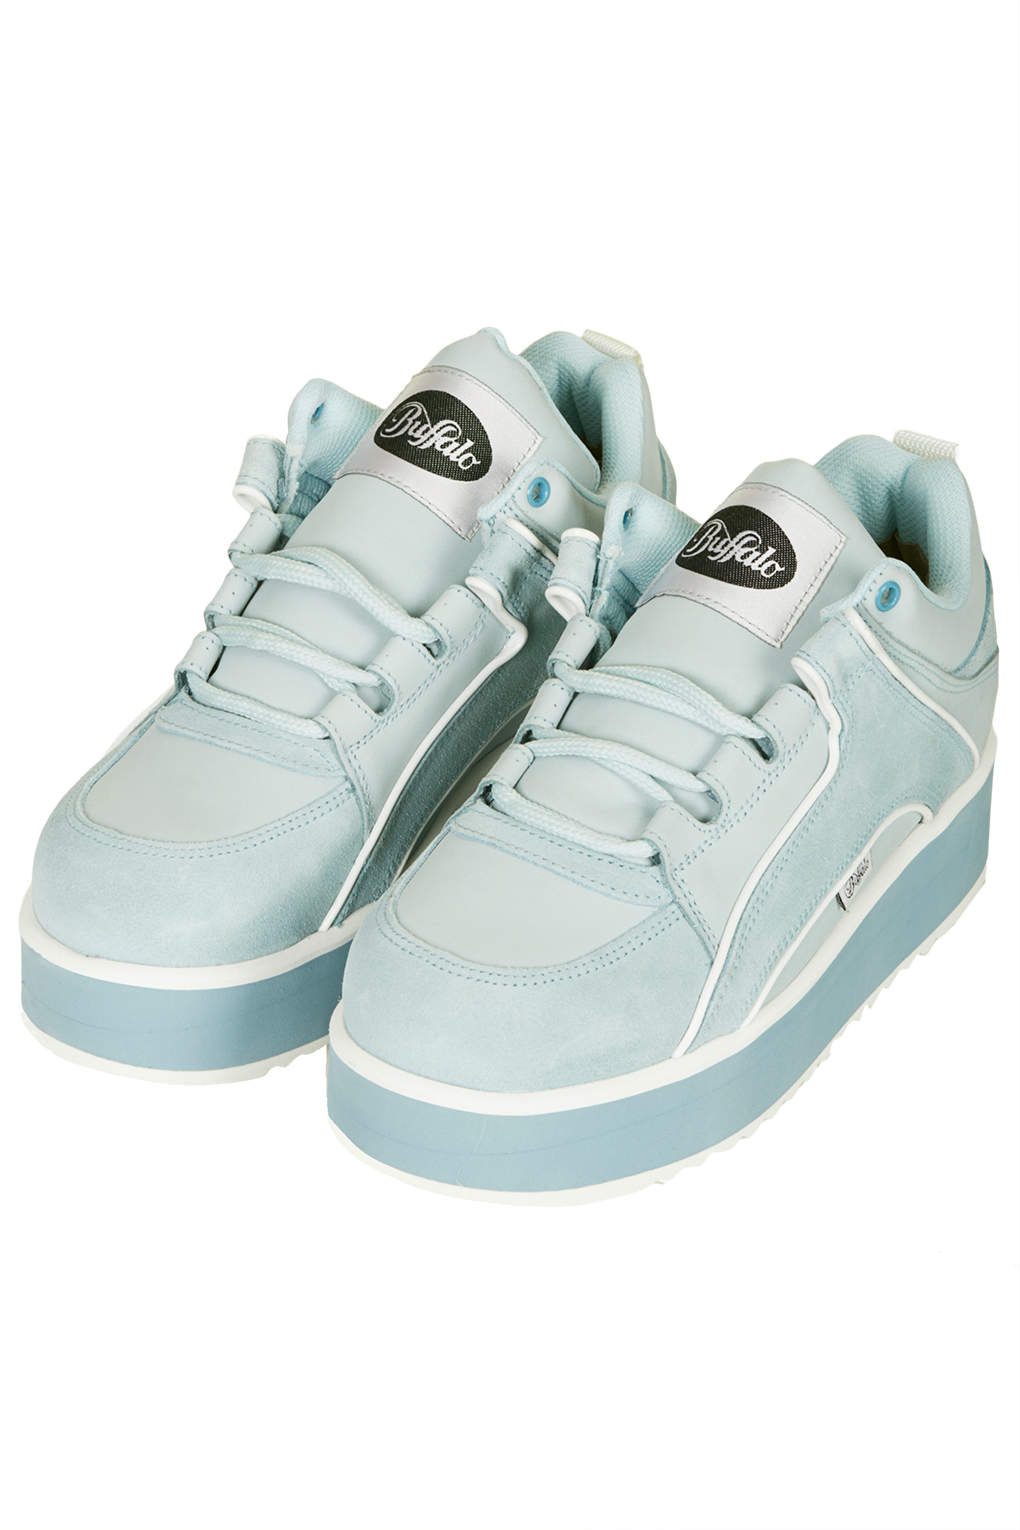 House Of Fraser Pale Blue Shoes